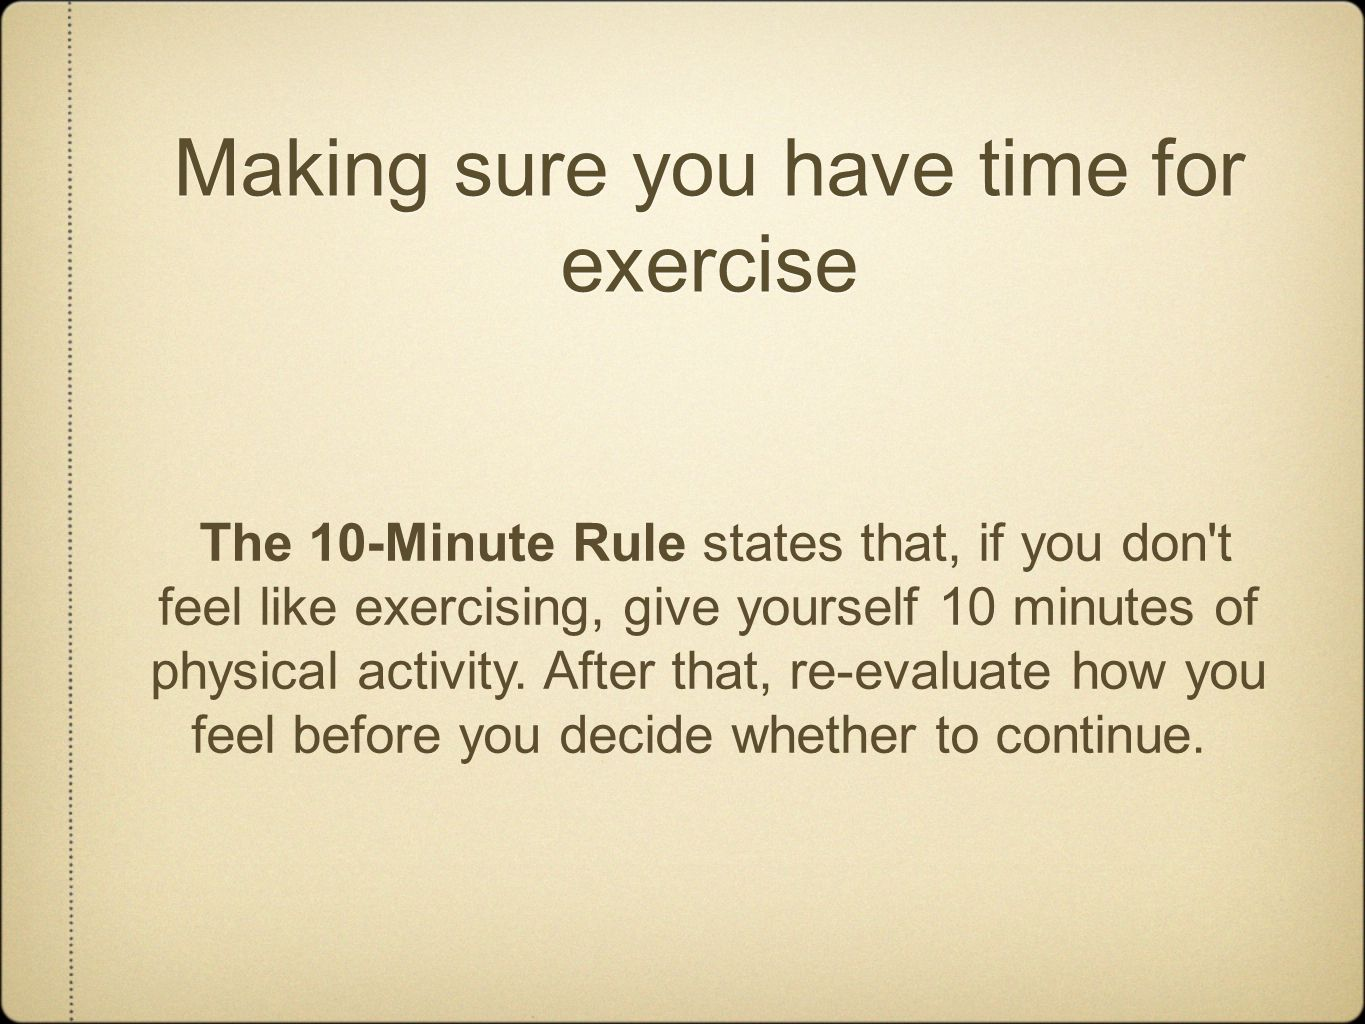 Making sure you have time for exercise The 10-Minute Rule states that, if you don t feel like exercising, give yourself 10 minutes of physical activity.